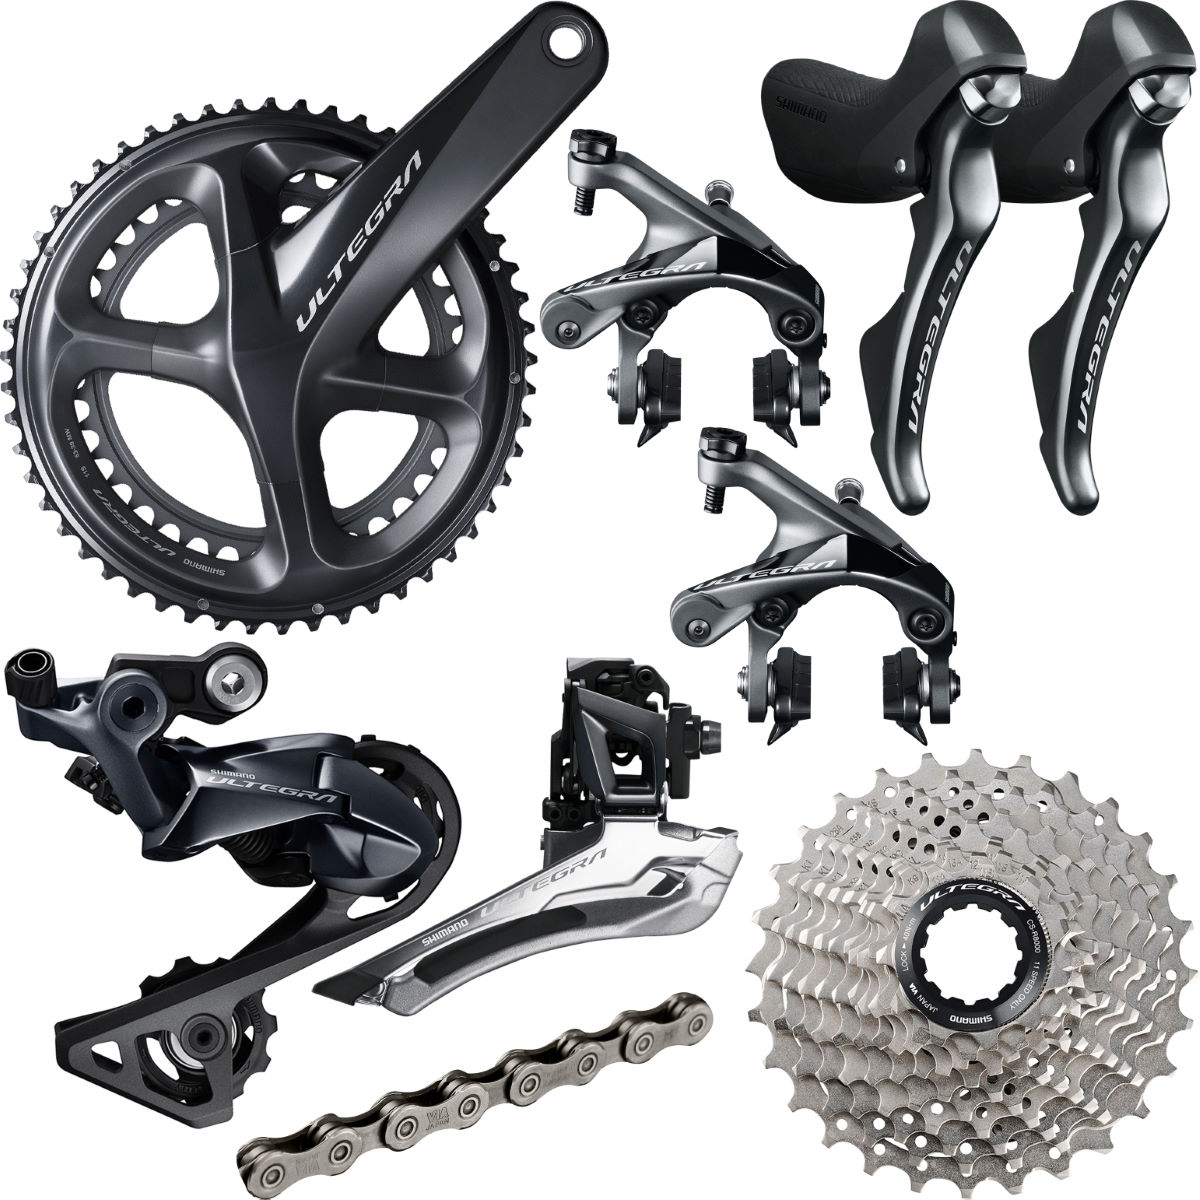 Shimano Ultegra R8000 11 Speed Groupset - Grupos completos